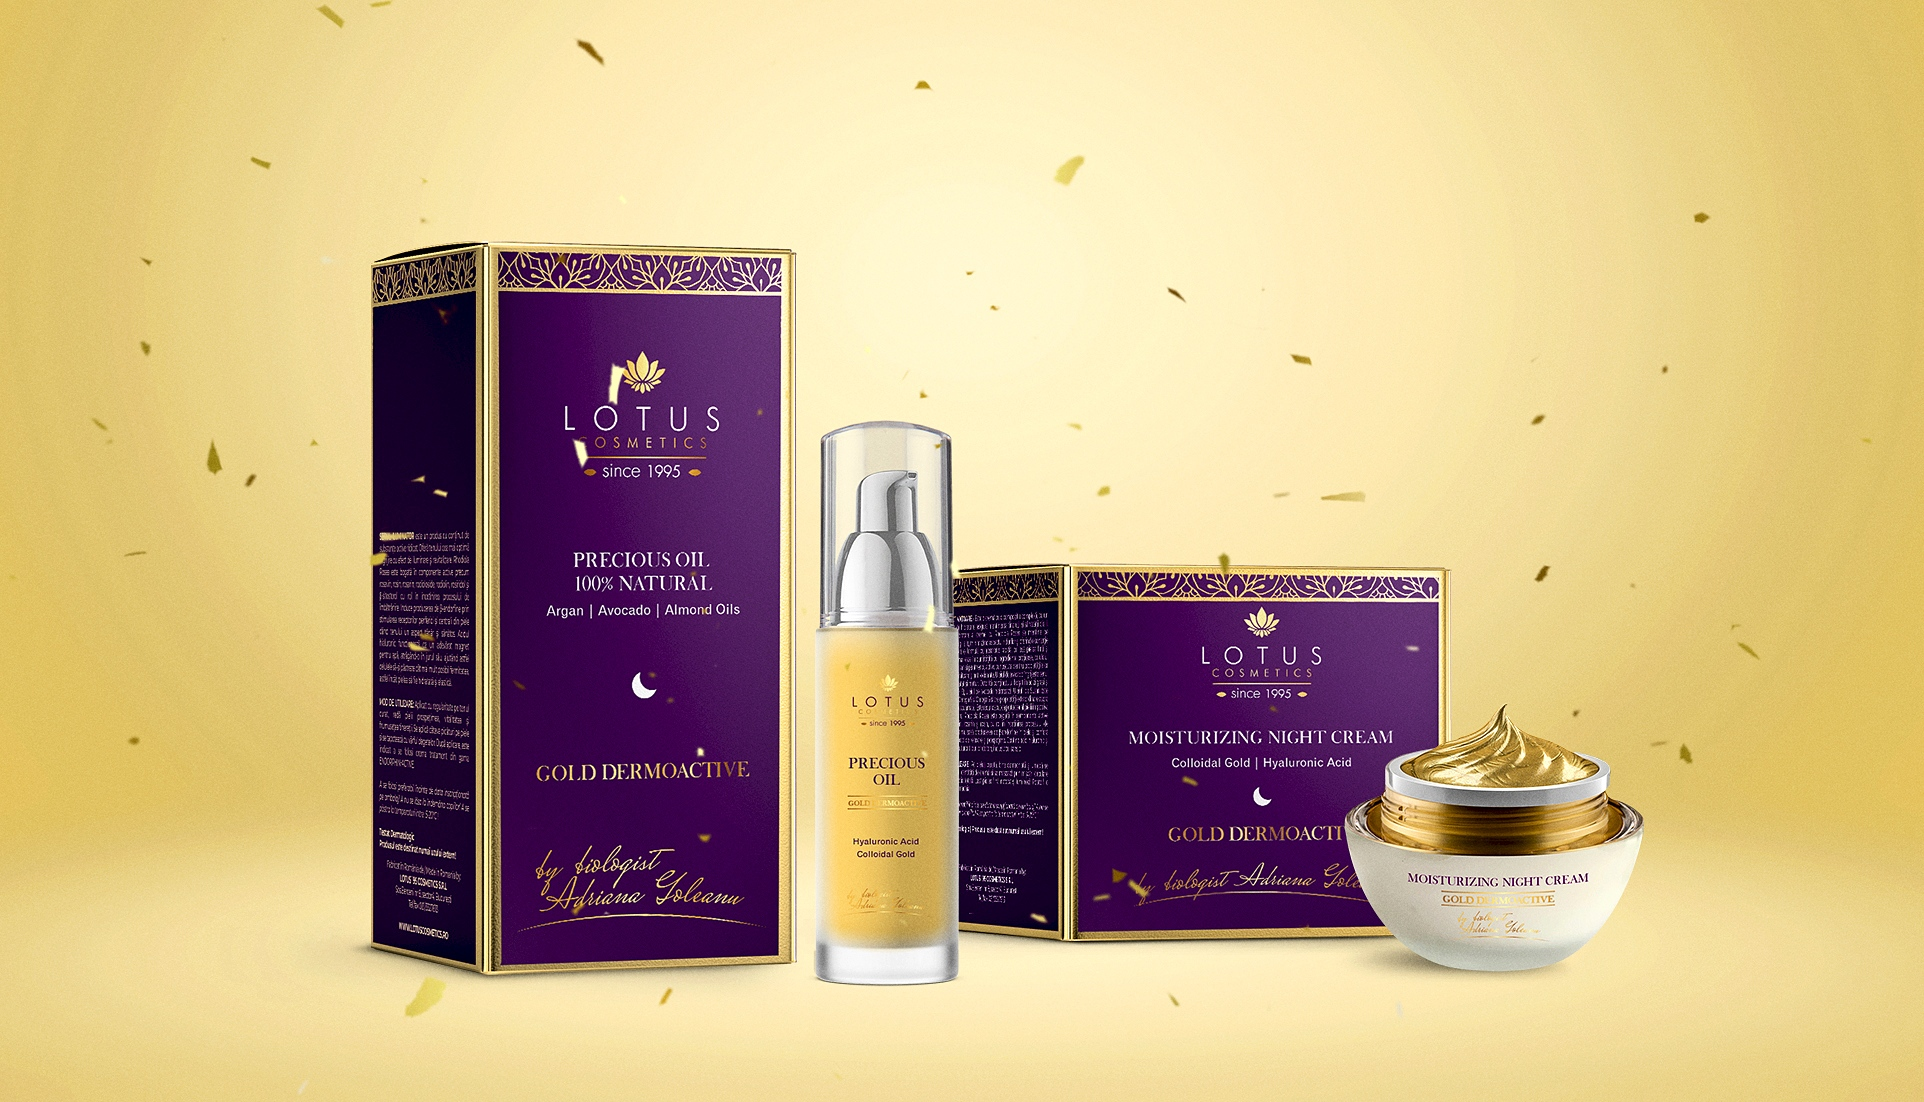 precious oil 100% natural, gold dermoactive, luxury packaging design, cosmetics packaging design labels, gold face cream branding,